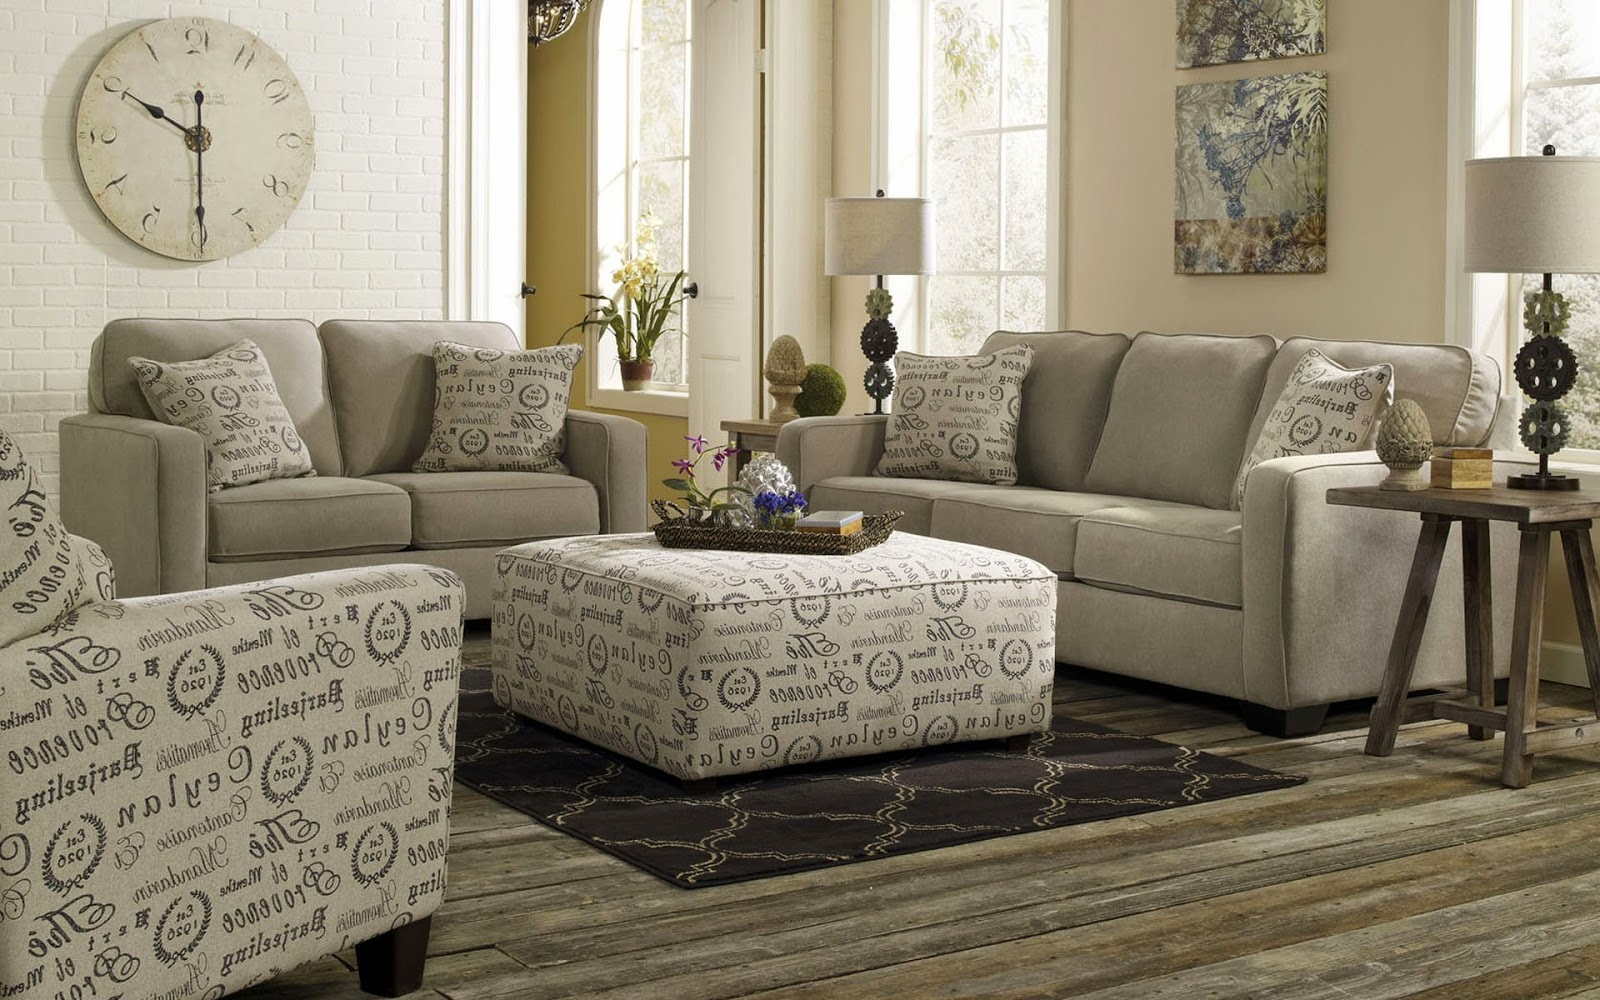 Best 5 Sofas by Ashley Furniture